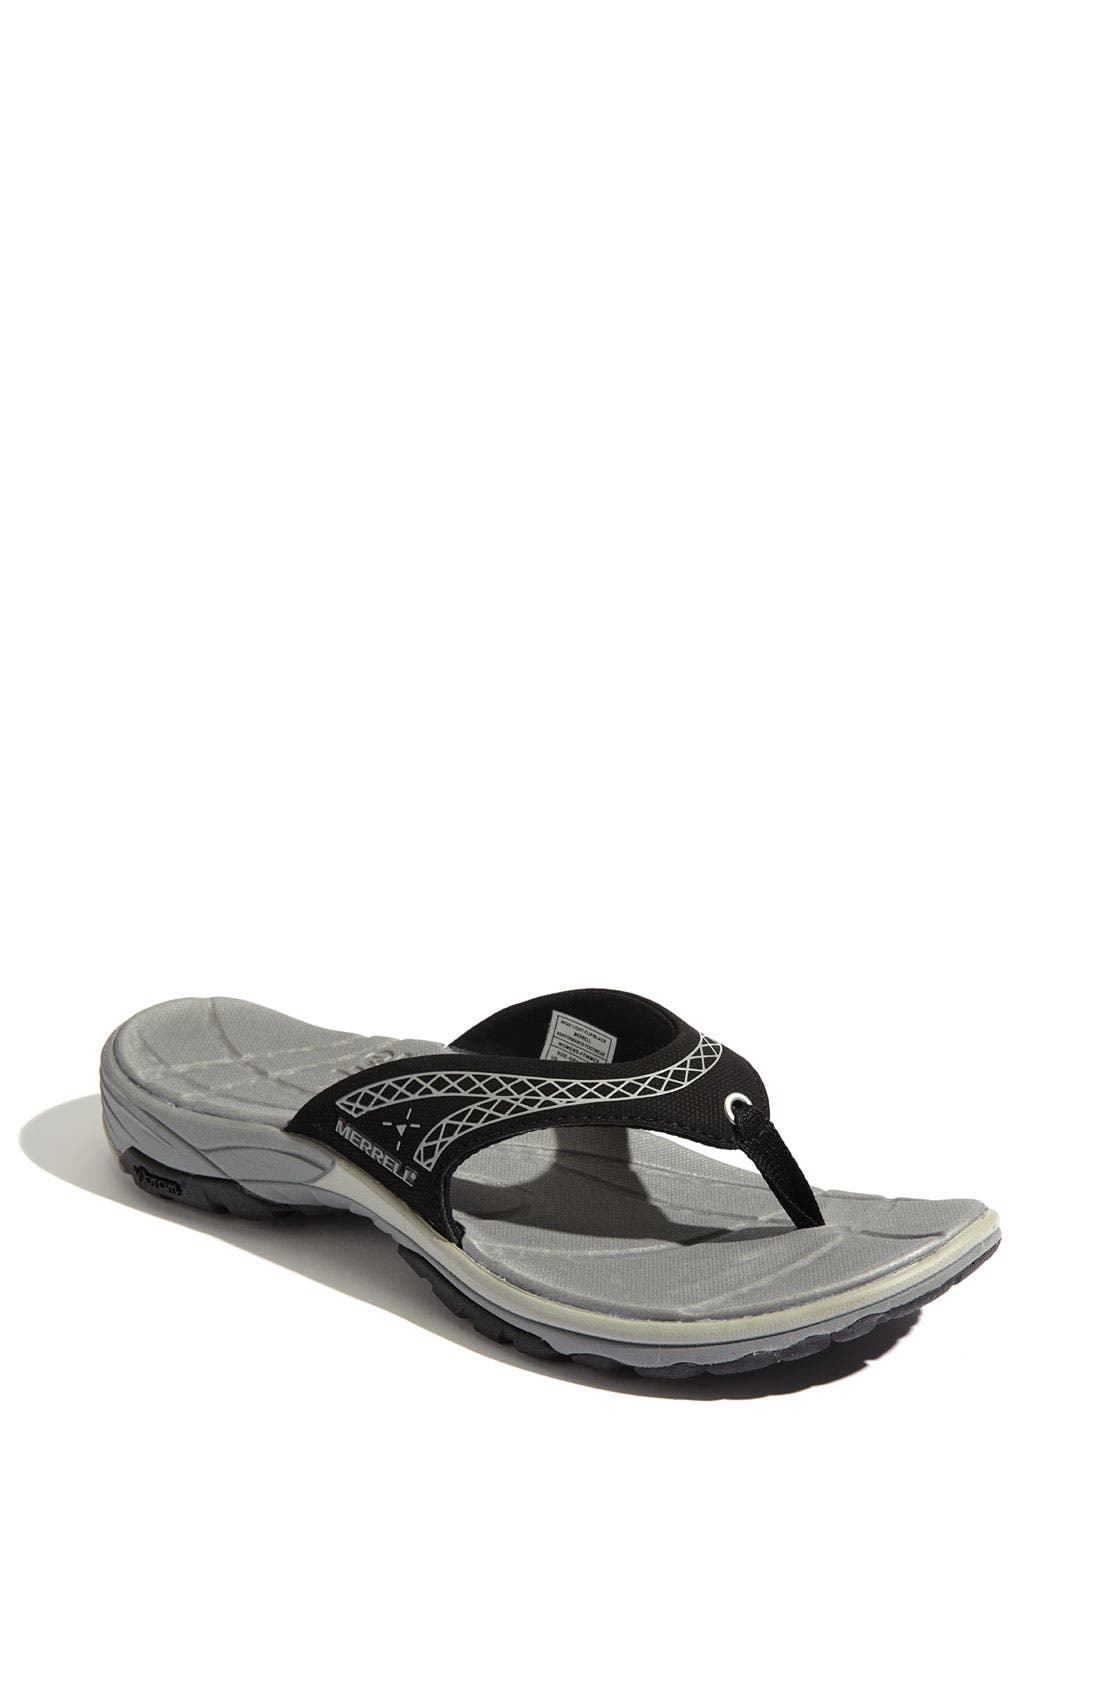 Alternate Image 1 Selected - Merrell 'Avian' Sandal